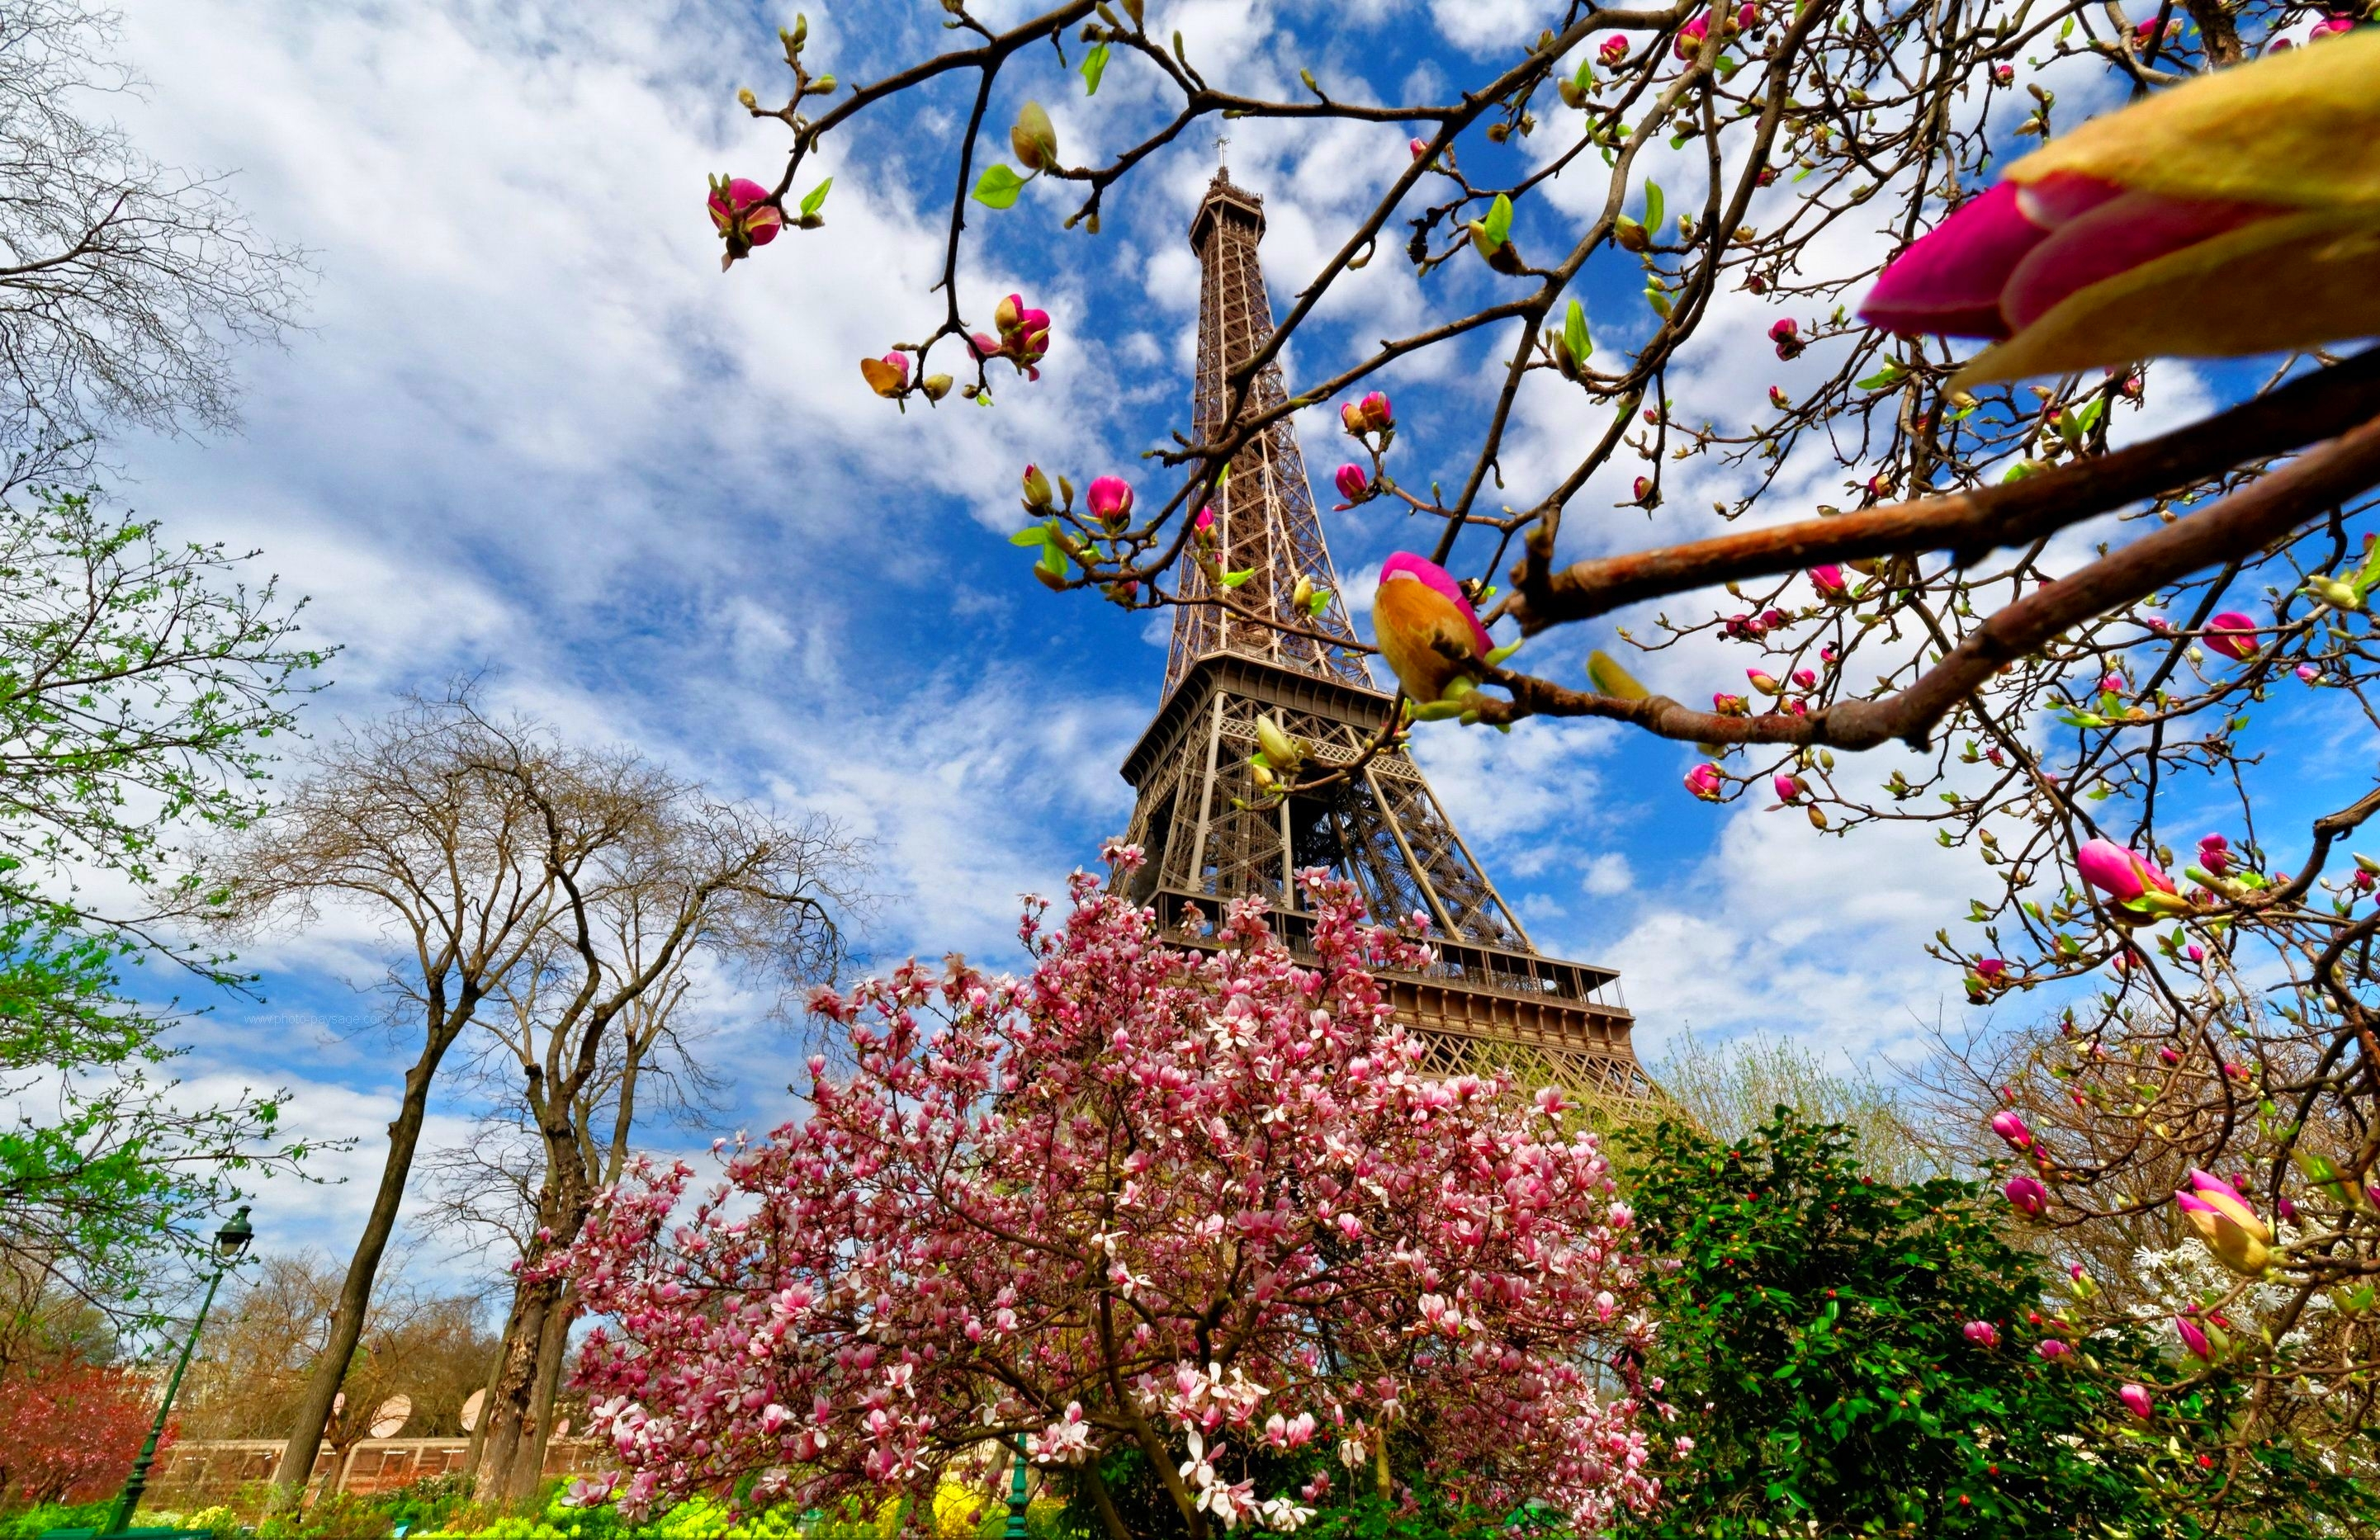 Spring vacation ideas, where to travel in Spring